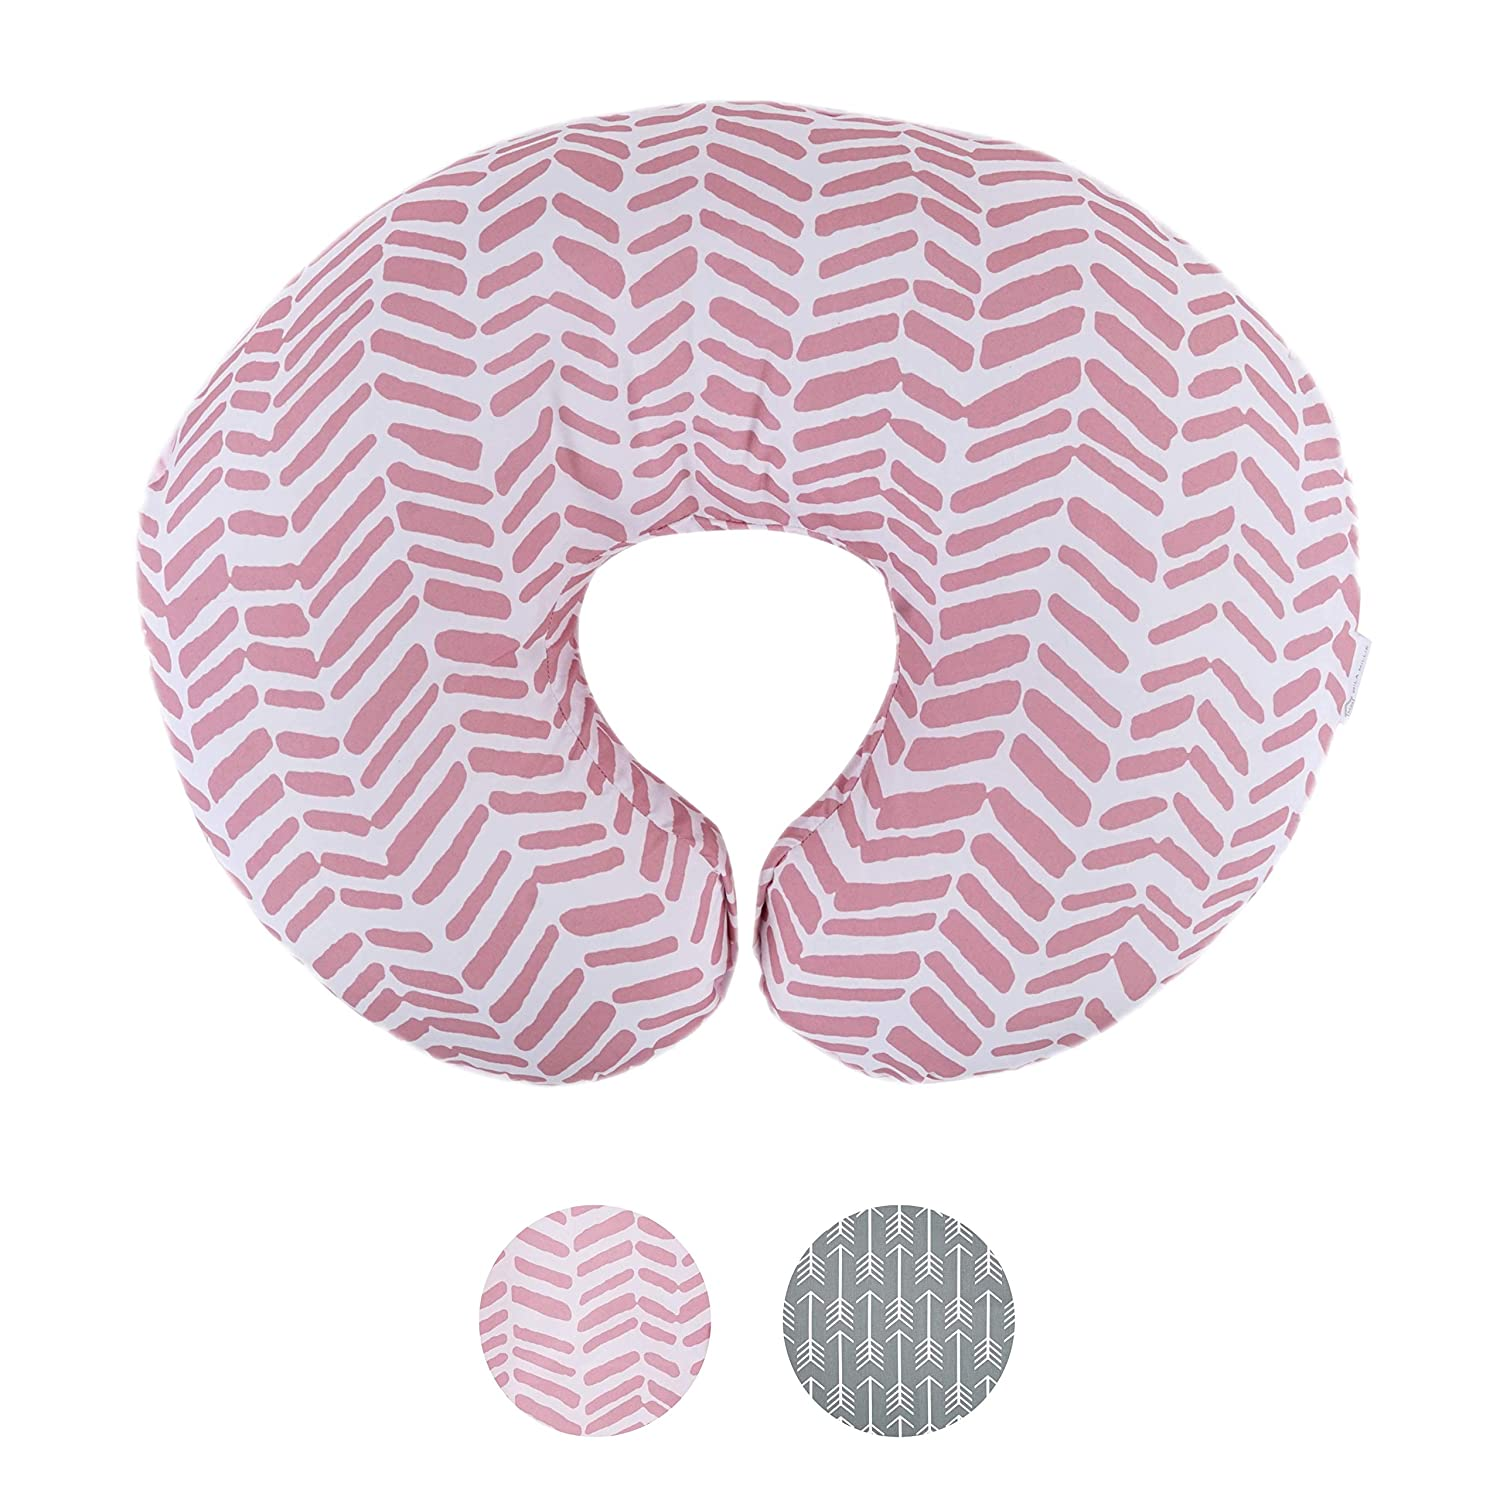 Water Resistant Nursing Pillow Cover | Premium Quality Soft Wipeable Fabric | Pink Herringbone Pattern | Minky Slipcover | Great for Breastfeeding Moms